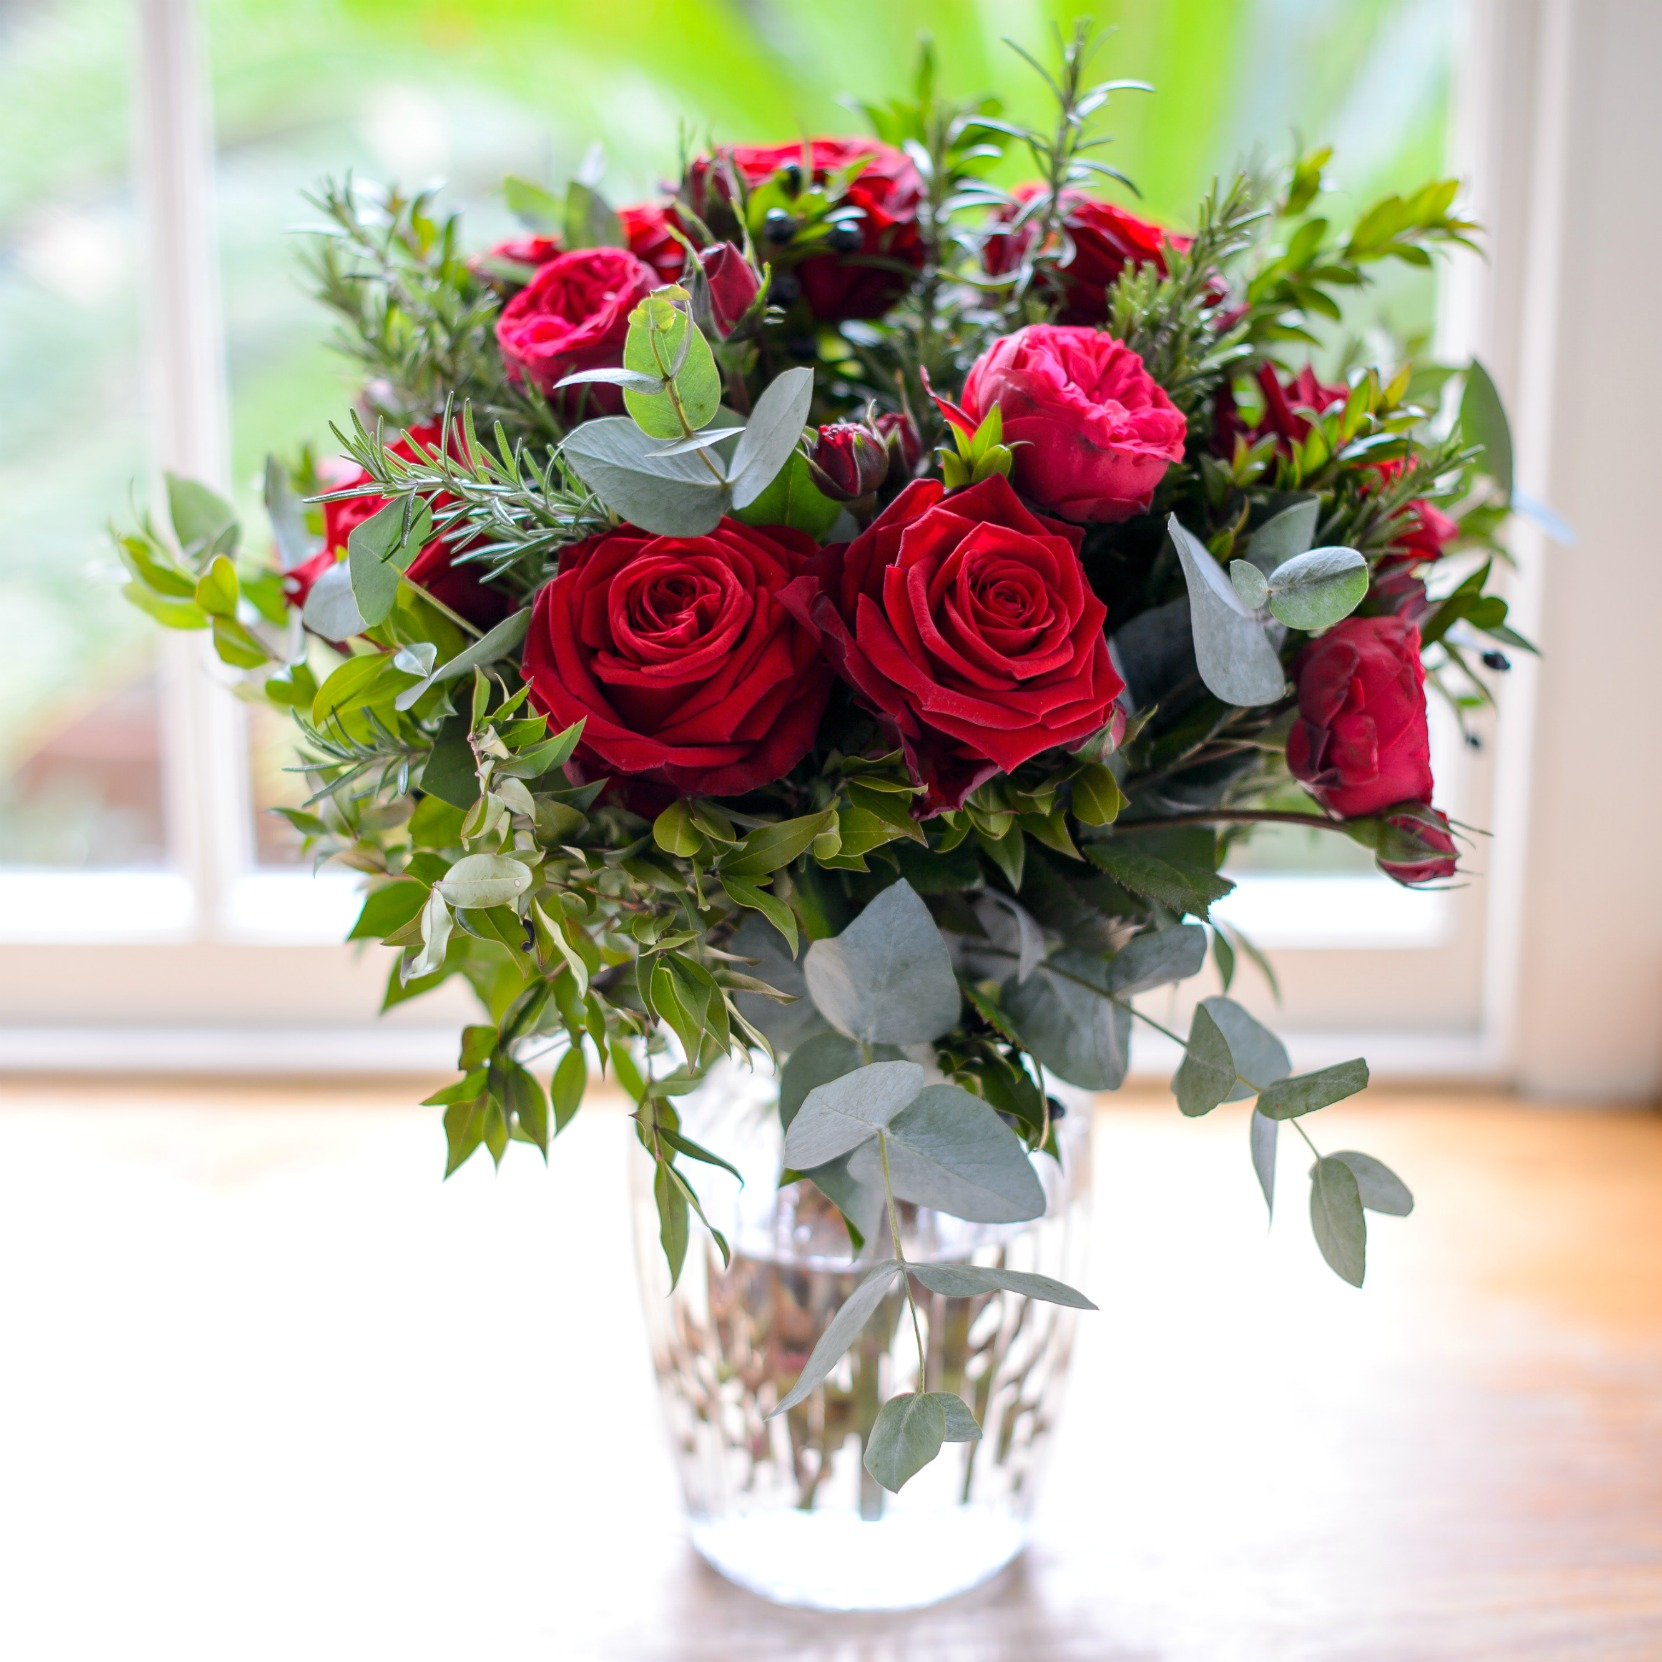 Luxury Flowers For Delivery: Buy Flowers Online: Luxury Flower Delivery In The UK